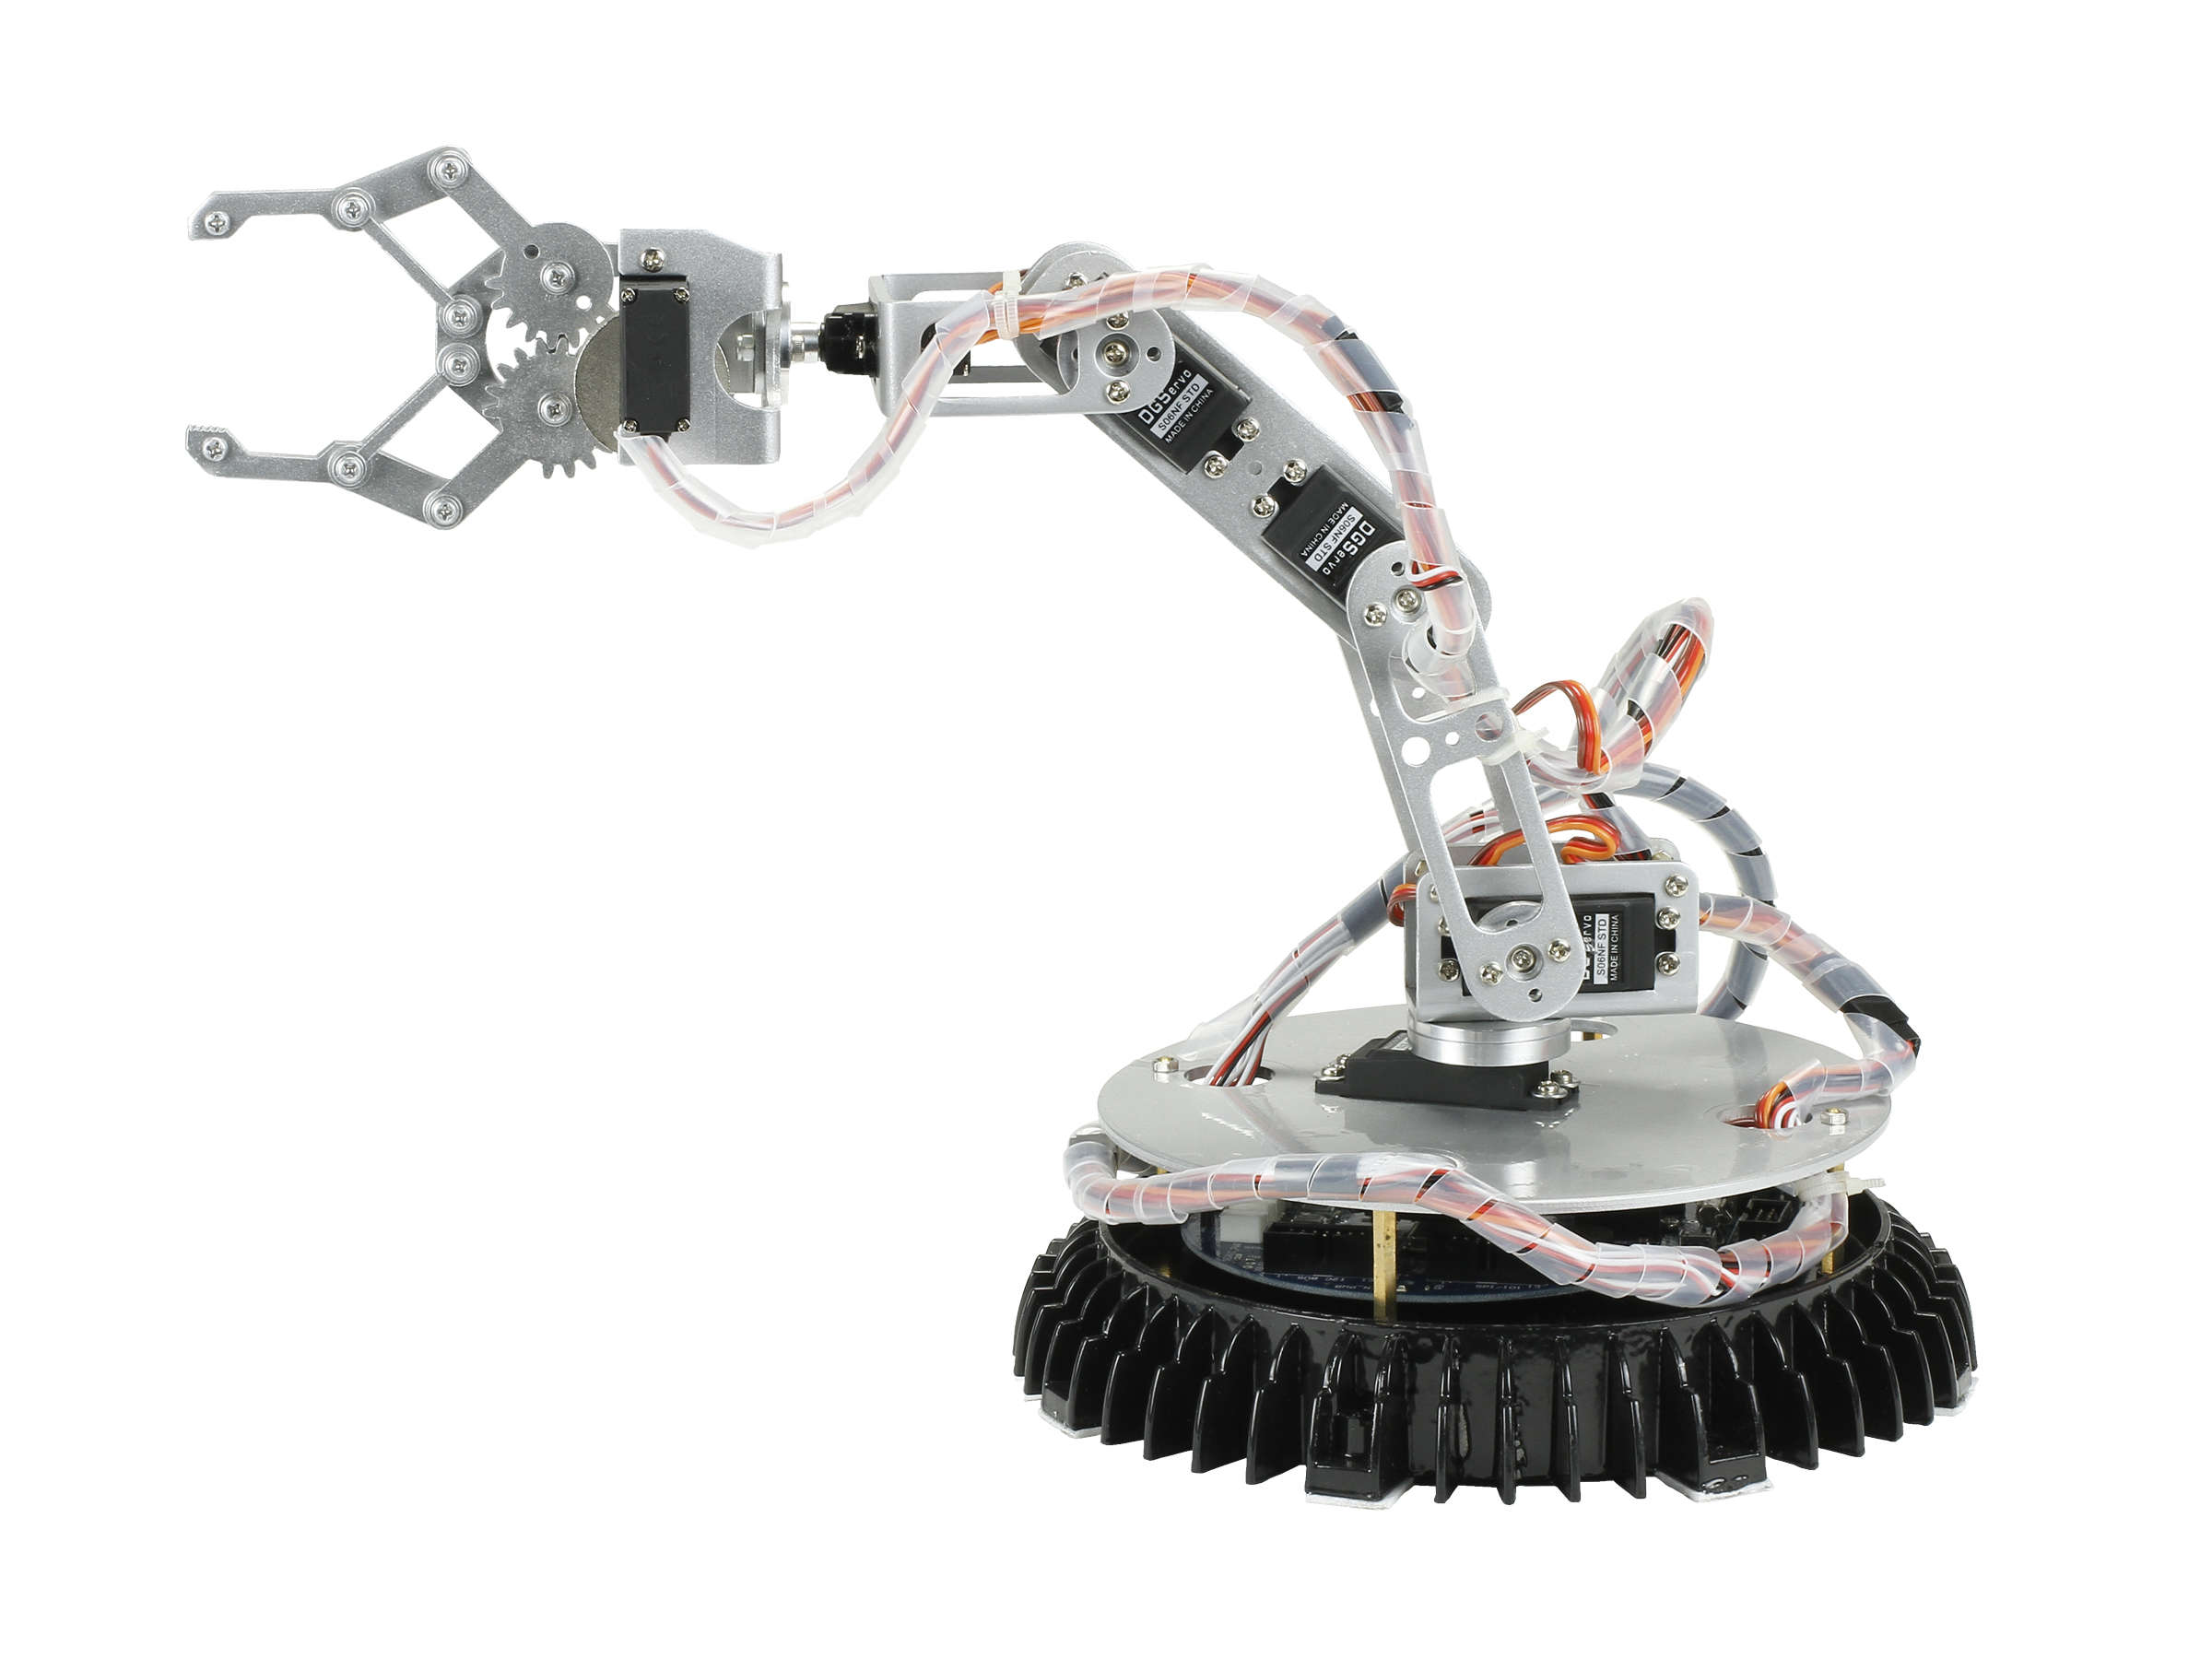 R700 Vector Robotic Arm